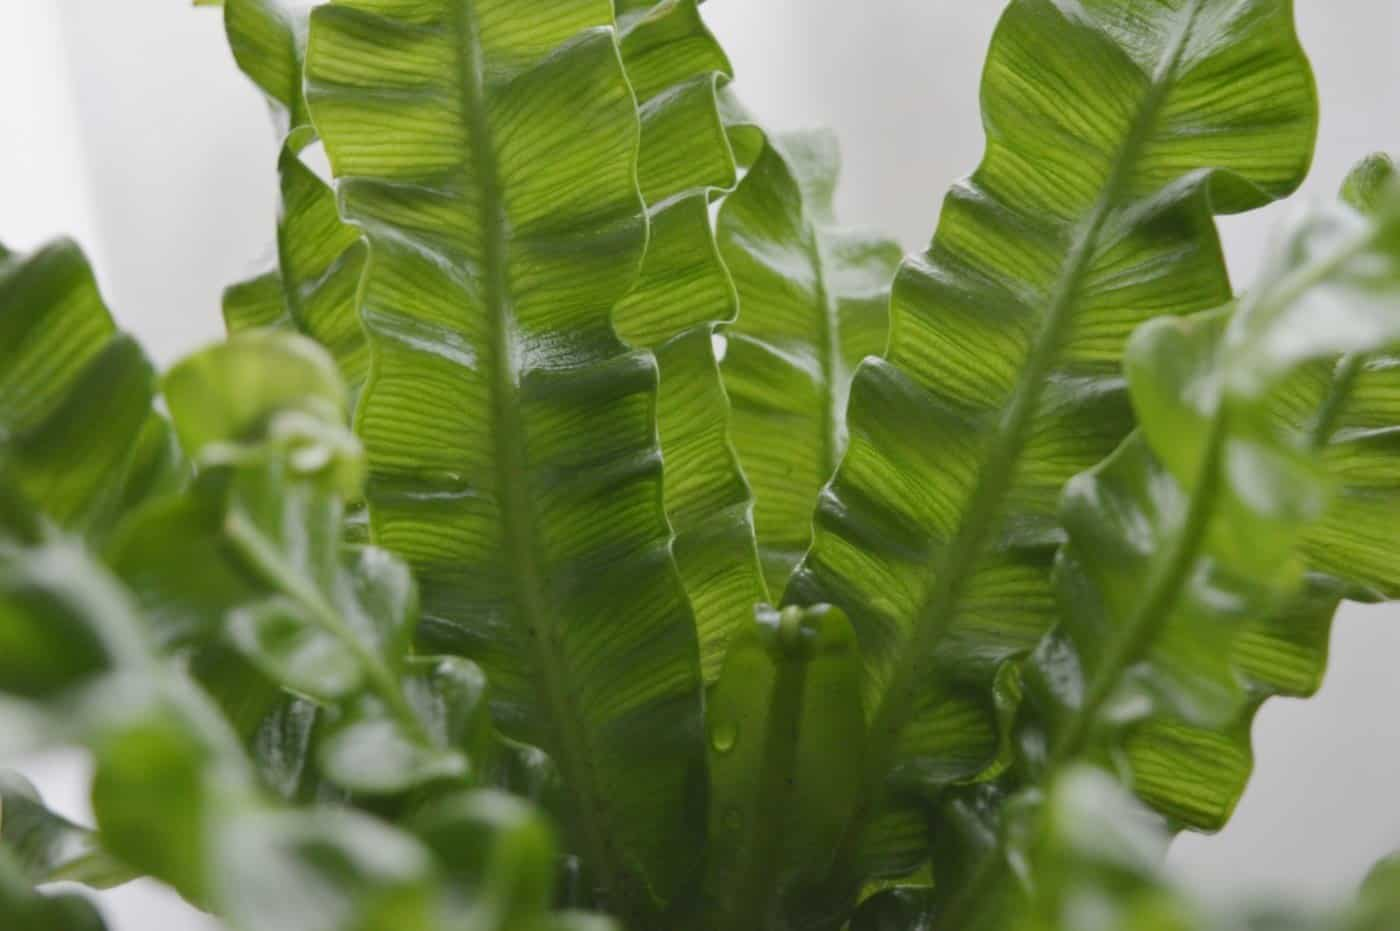 closeup image of fern